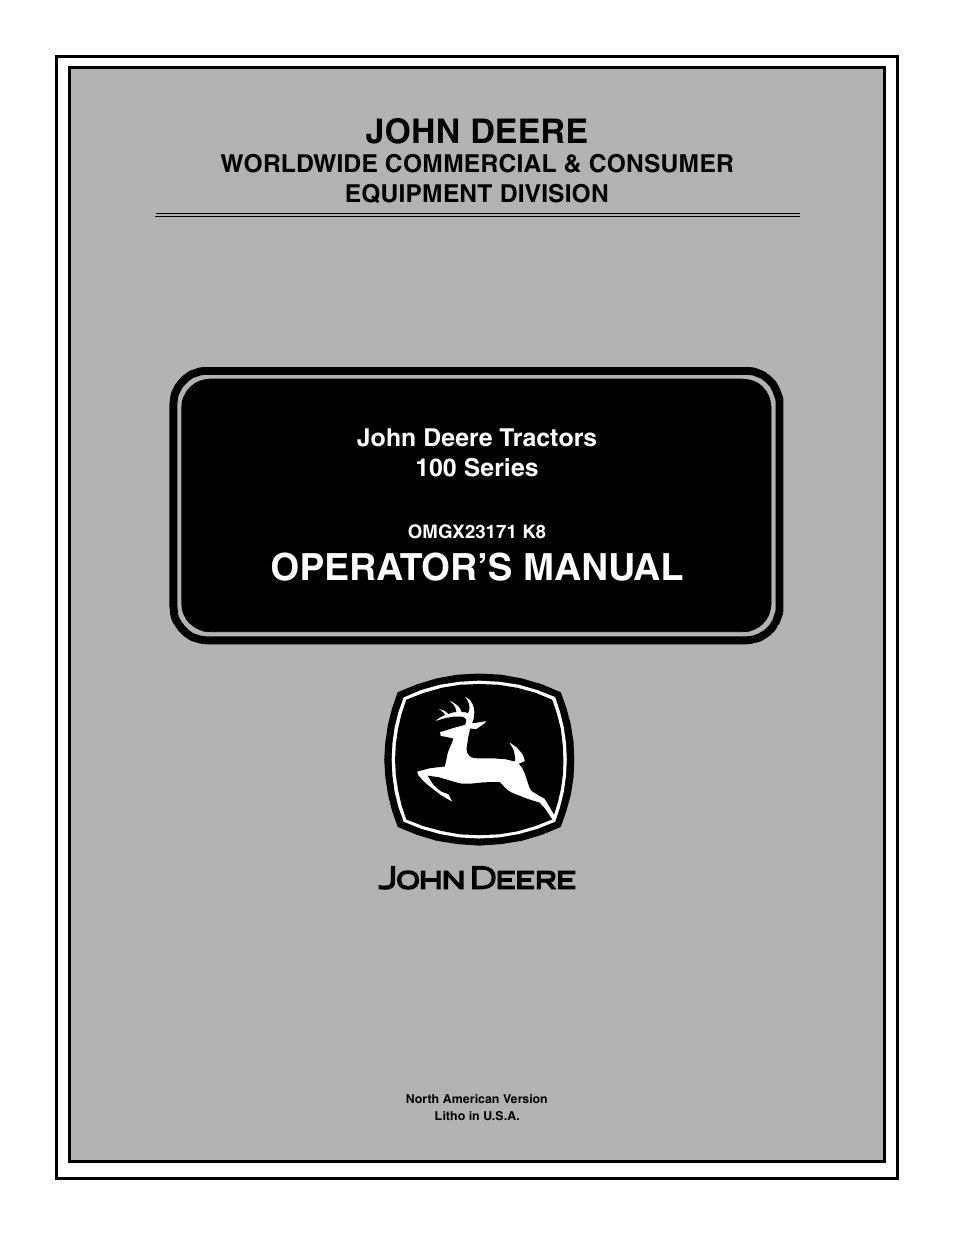 john deere la105 user manual 52 pages also for tractors 100 rh manualsdir com john deere la105 repair manual John Deere LA105 Manual PDF